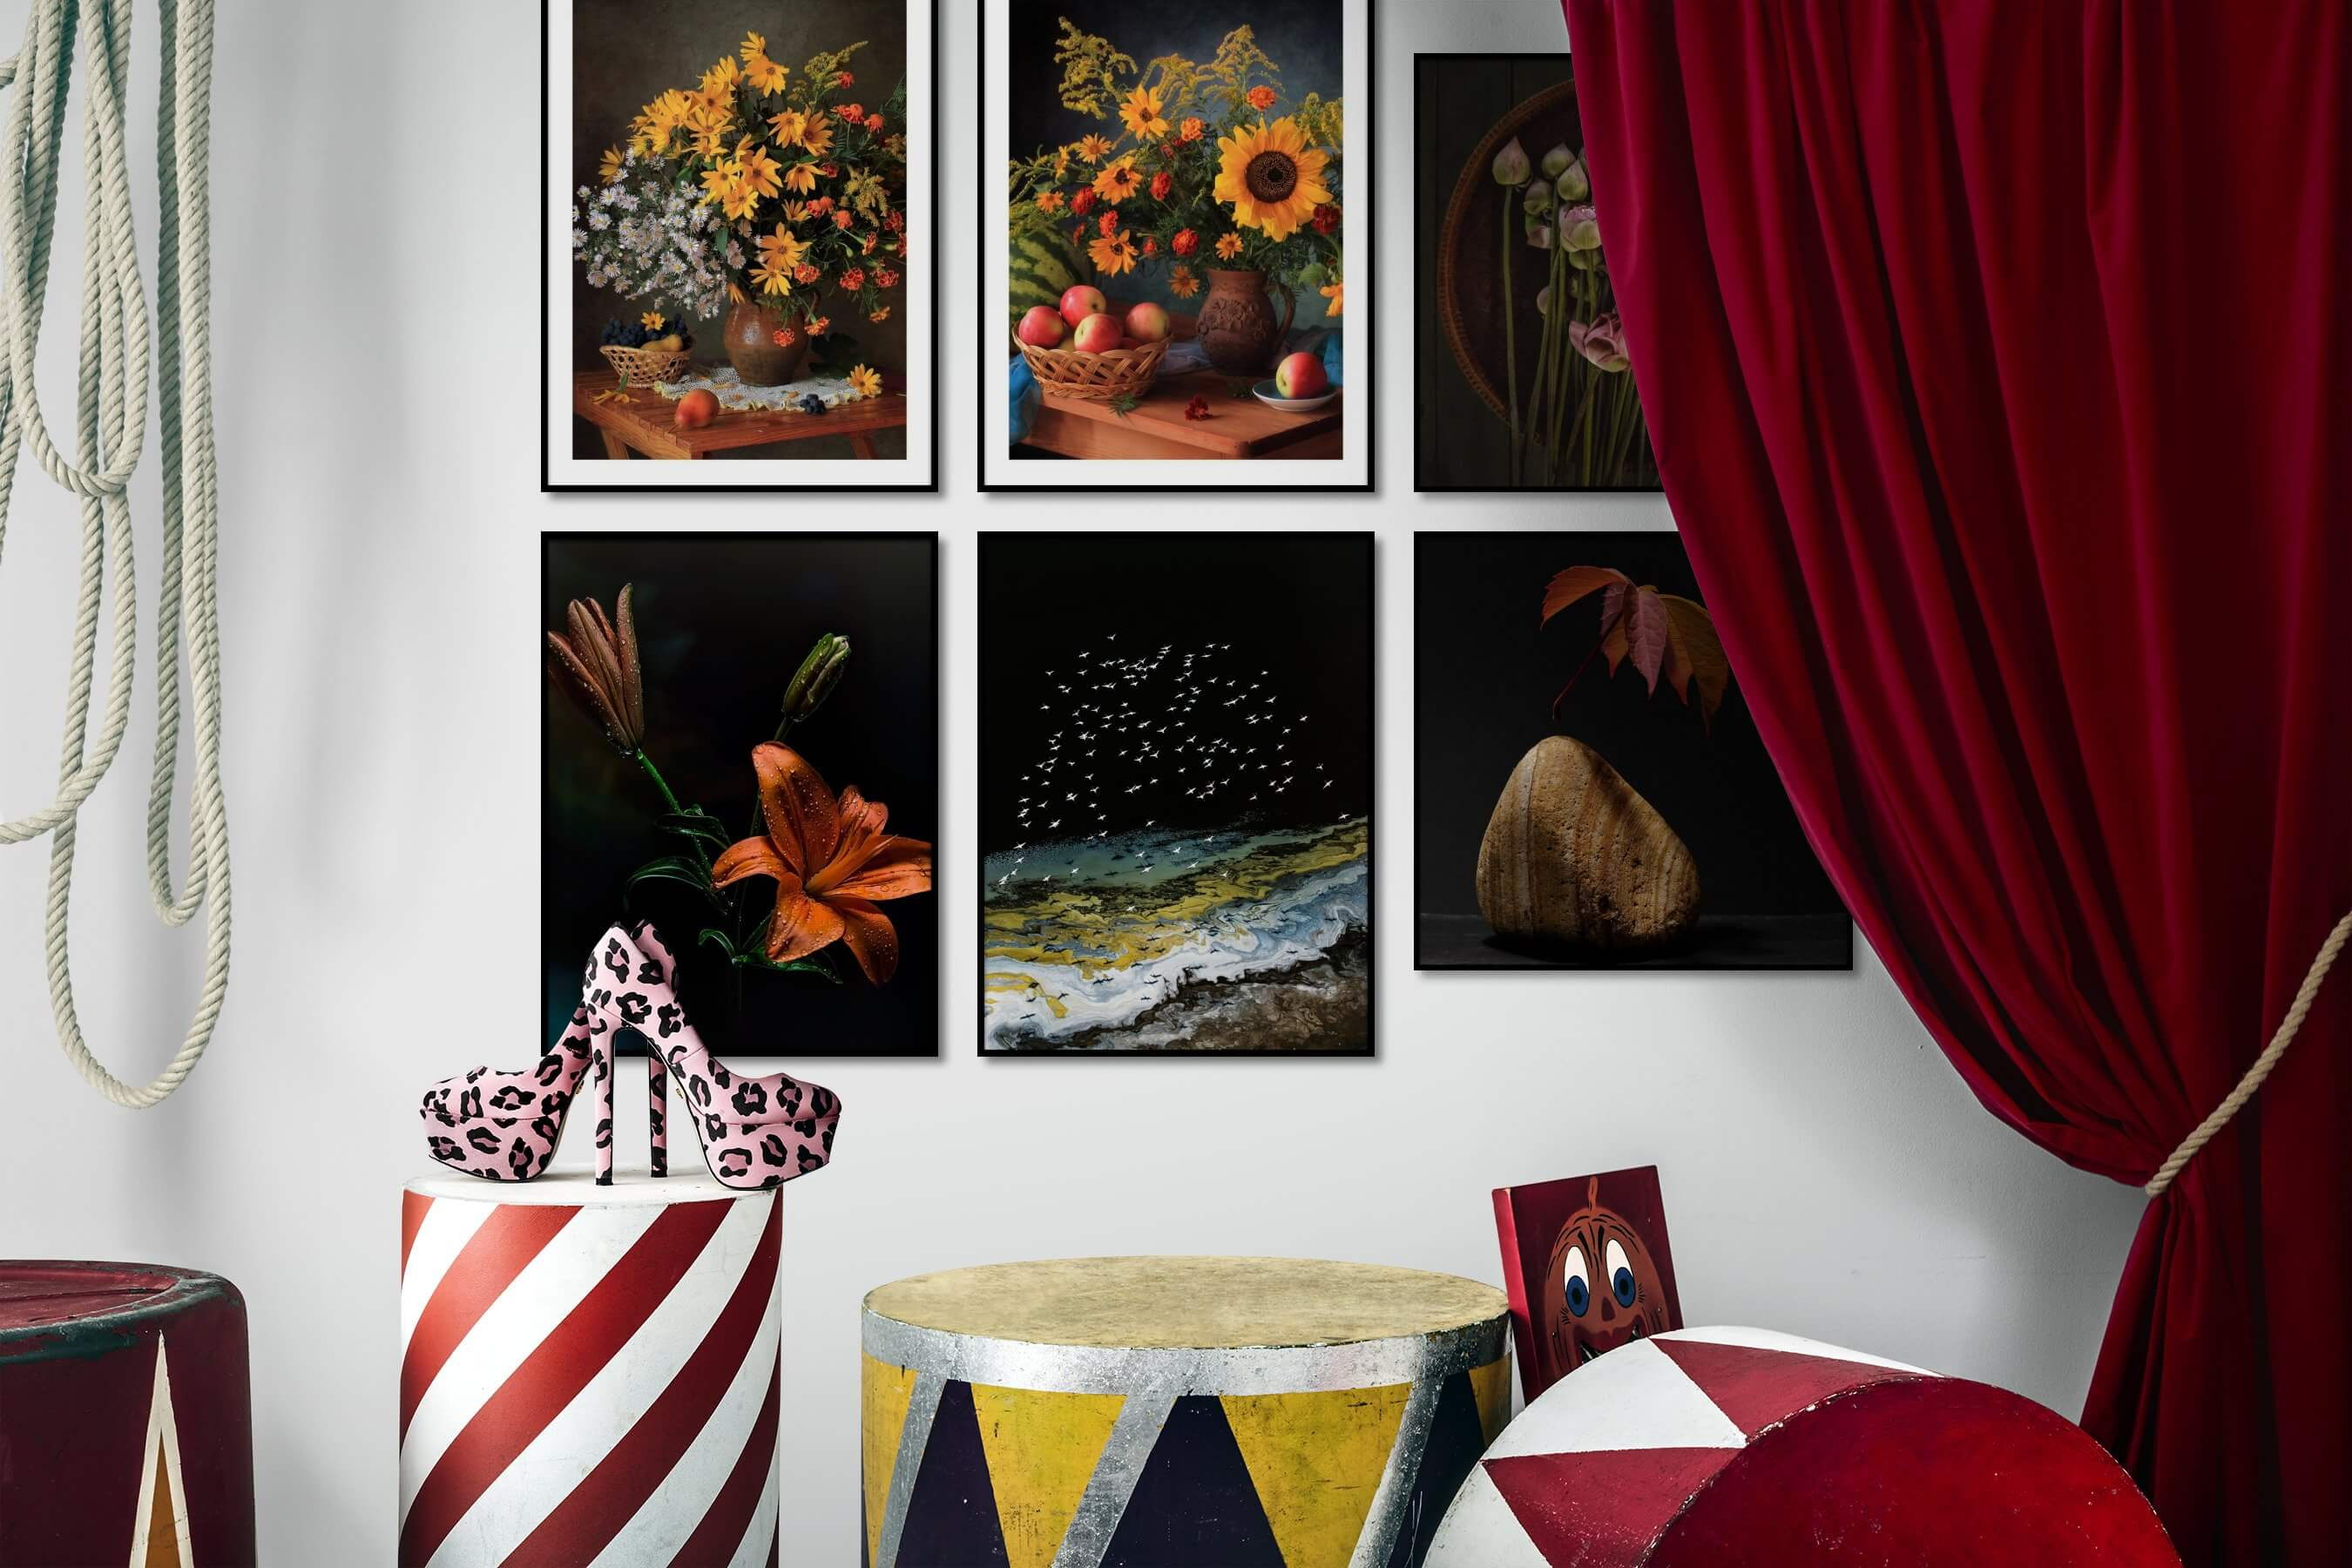 Gallery wall idea with six framed pictures arranged on a wall depicting Flowers & Plants, Vintage, Dark Tones, For the Moderate, Nature, For the Minimalist, and Mindfulness